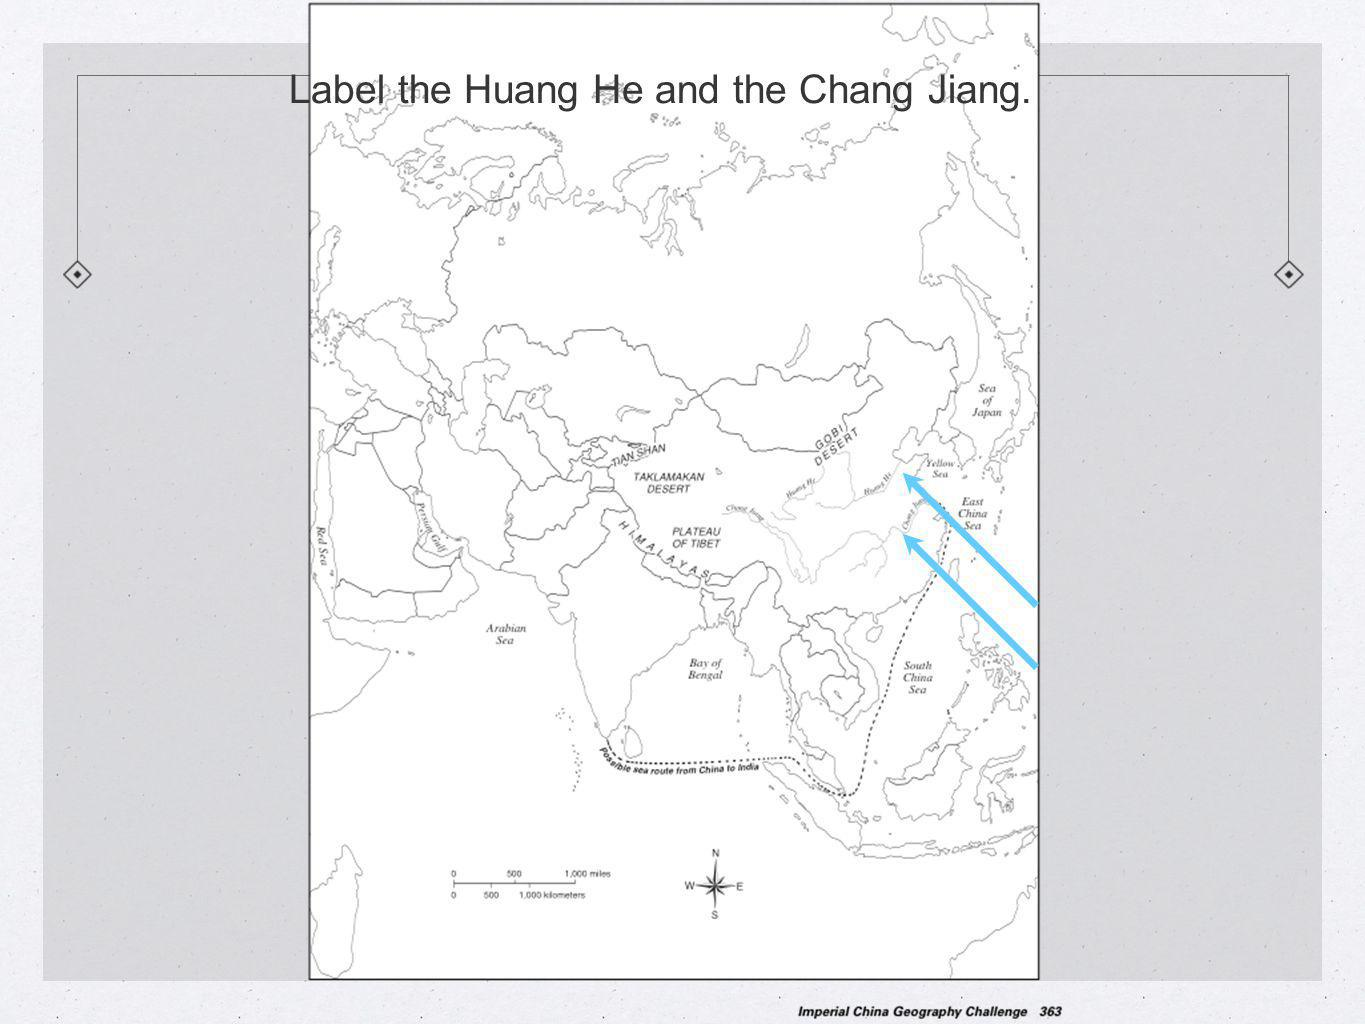 Label the Huang He and the Chang Jiang.